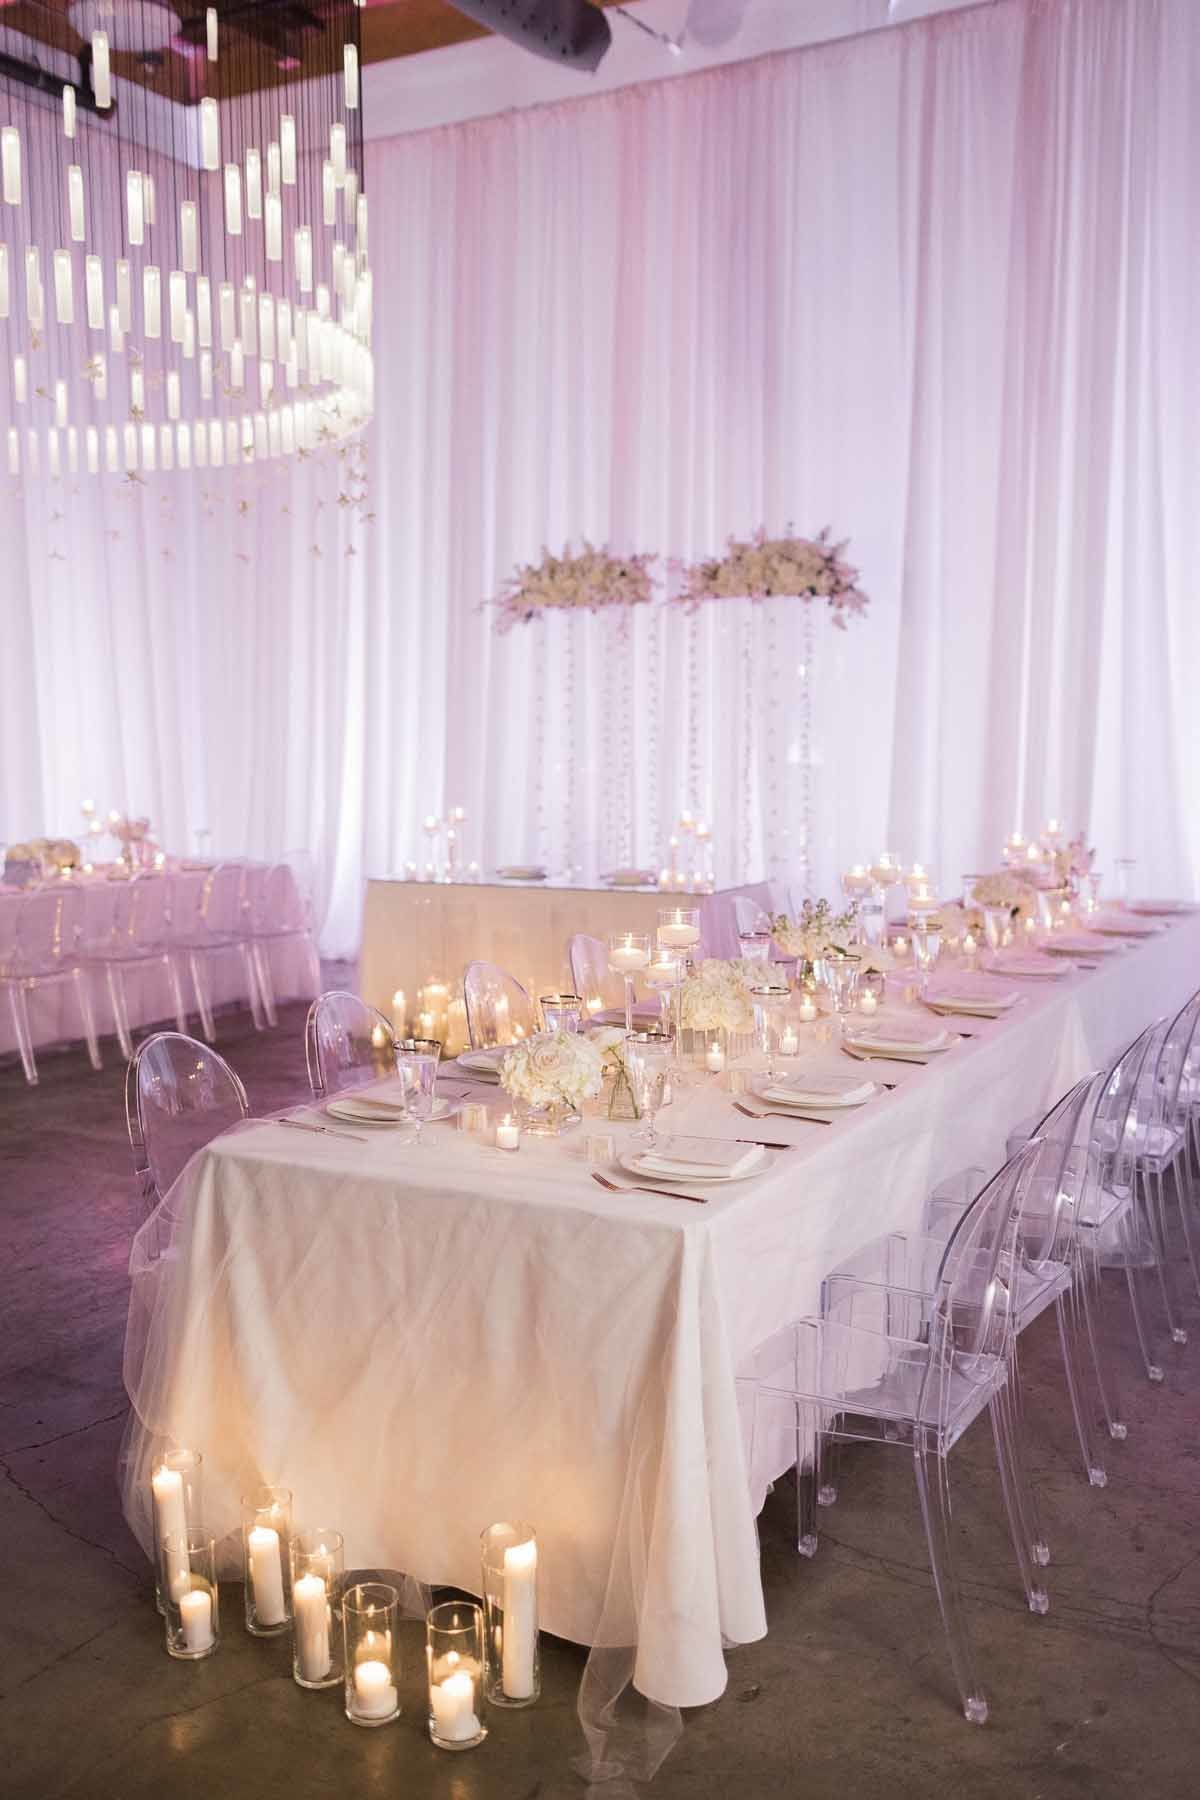 All white wedding with white draping, white linens, white flowers, and lots of candles at Canva Event Space in Seattle